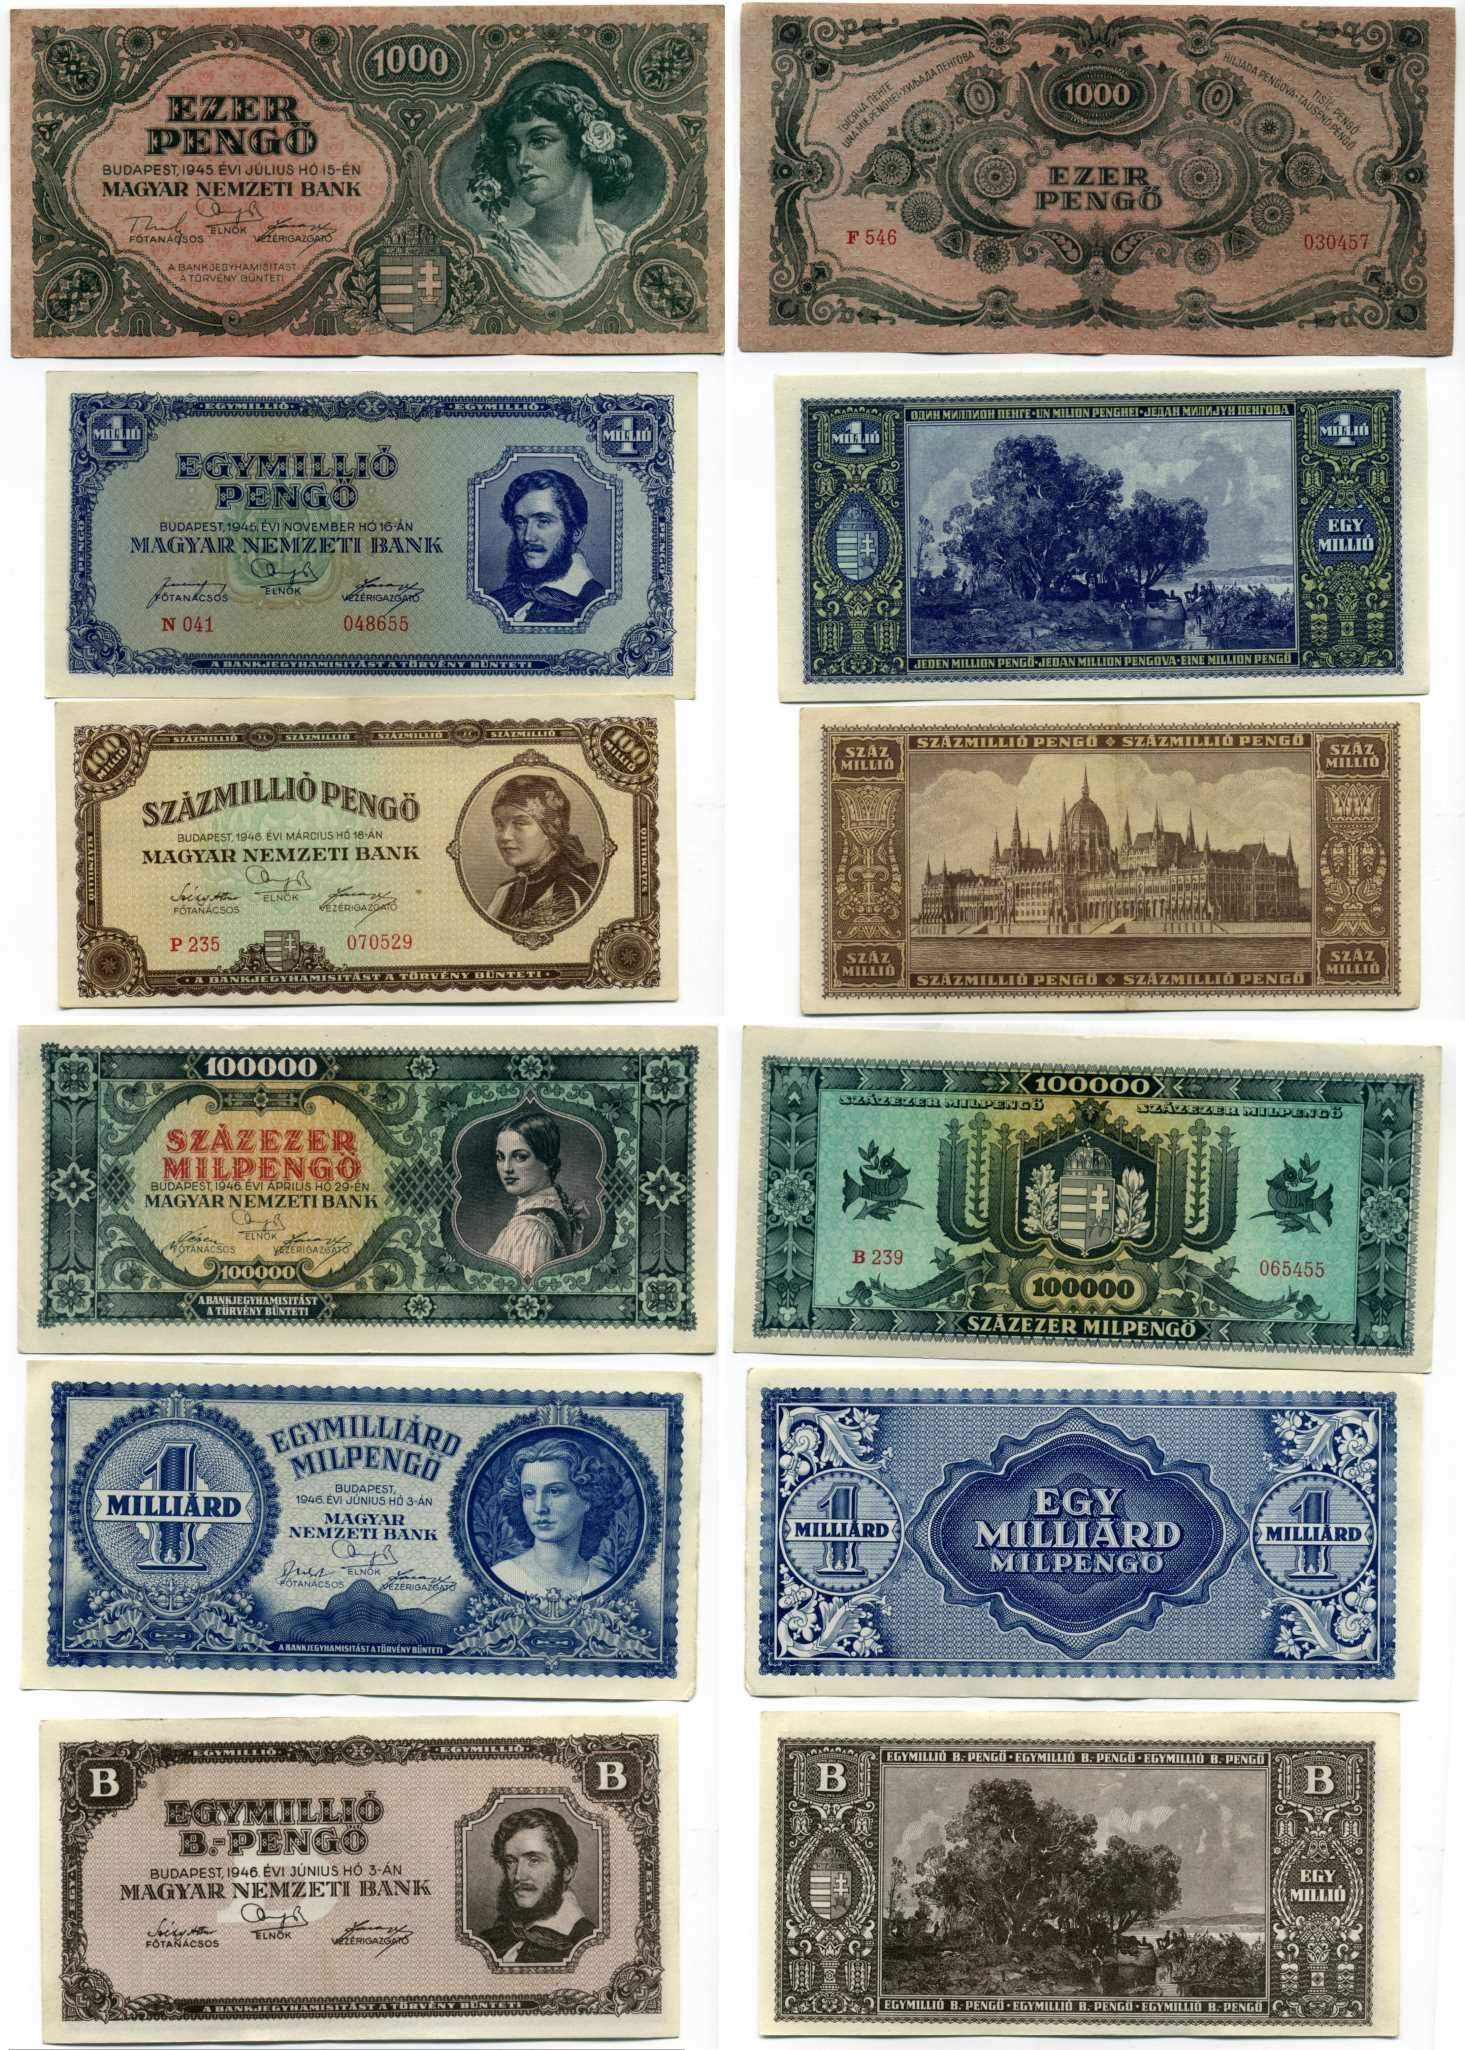 Hungary money hungarianinflation currency world currency coins and currency of eastern europe buycottarizona